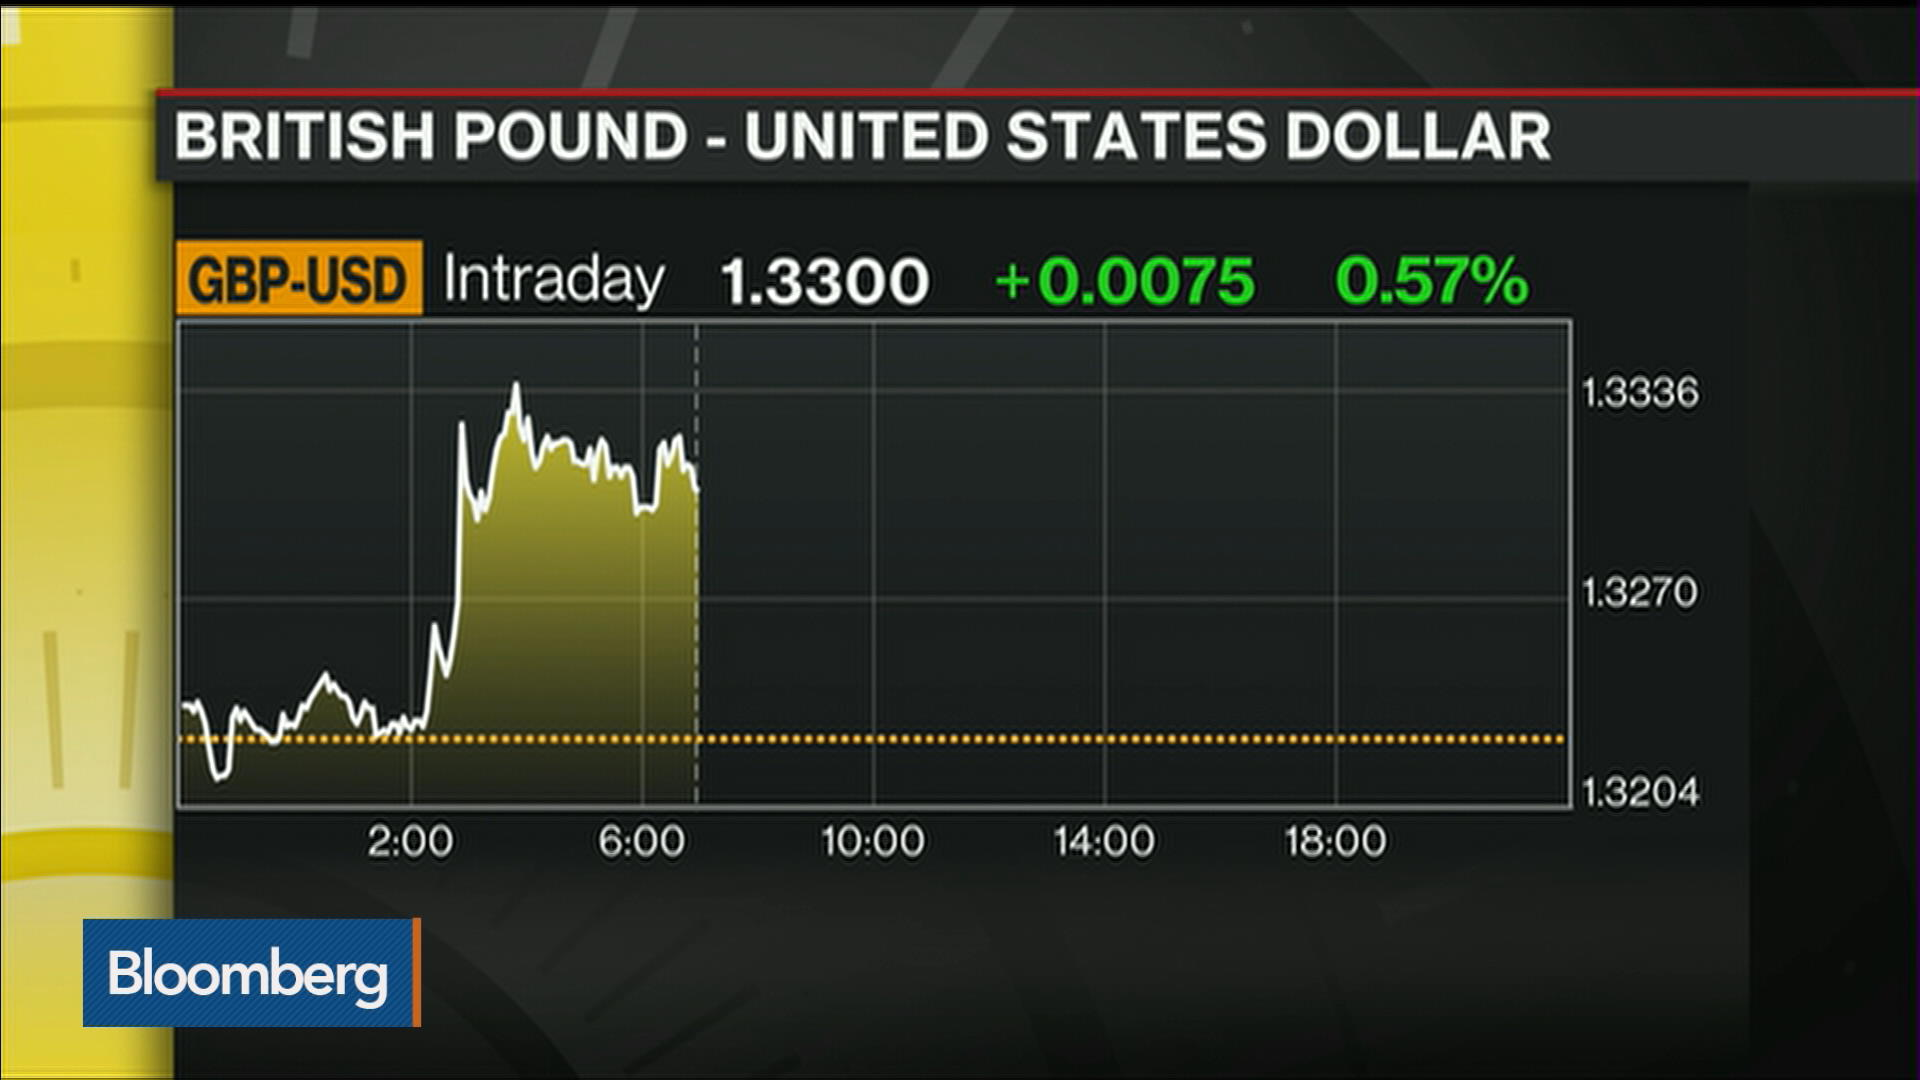 Pound Heads for First Post-Brexit Gain as Dollar Demand Weakens